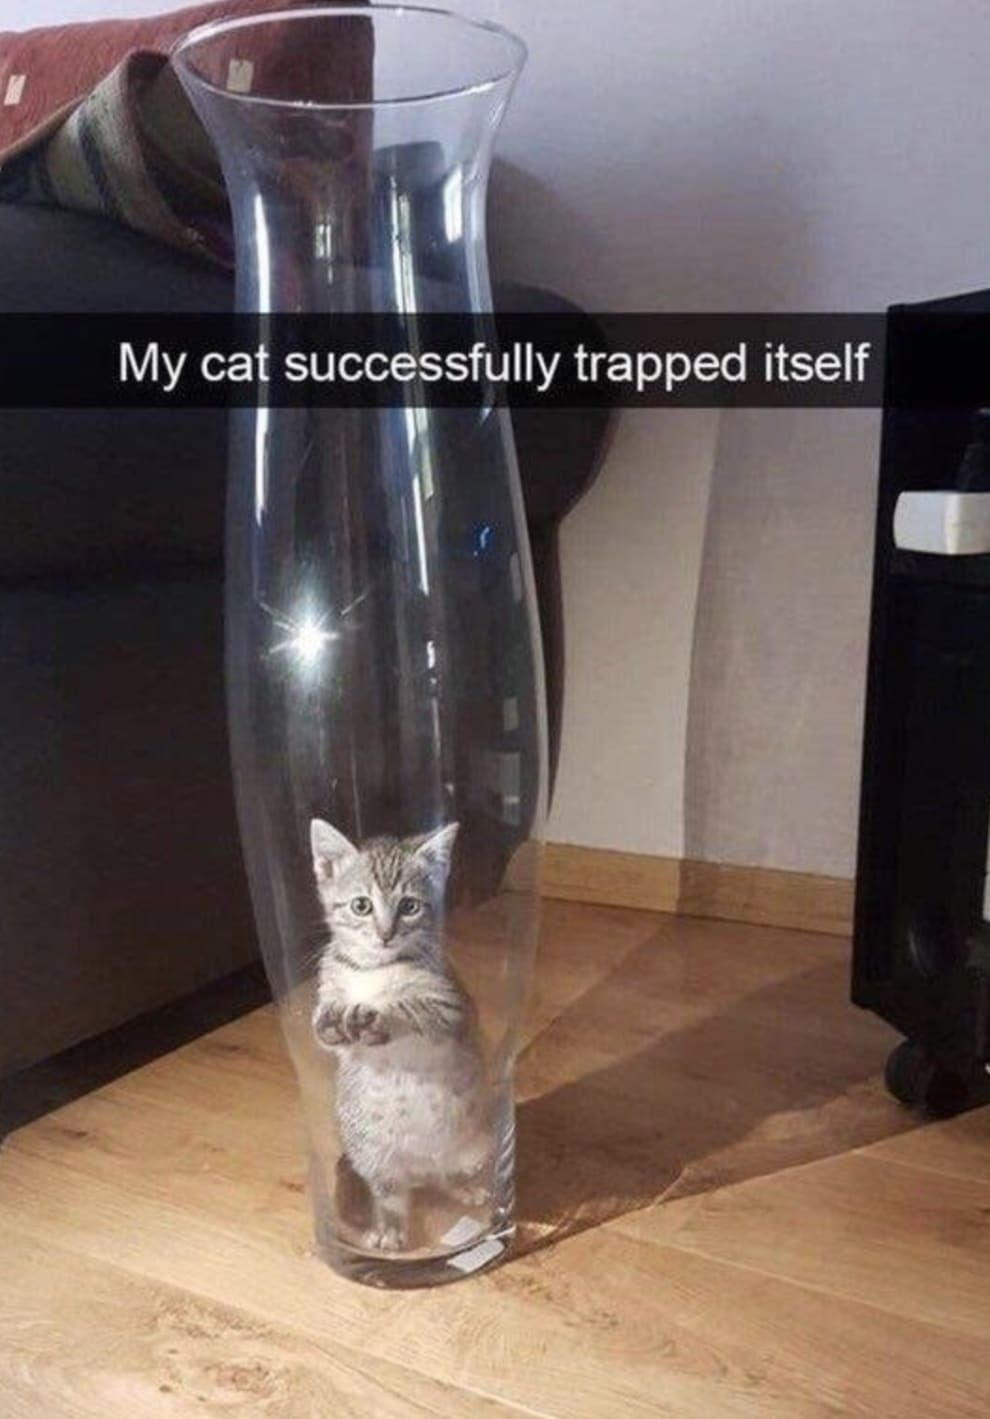 19 Pictures That Prove Cats Are Cute But Not To Be Trusted